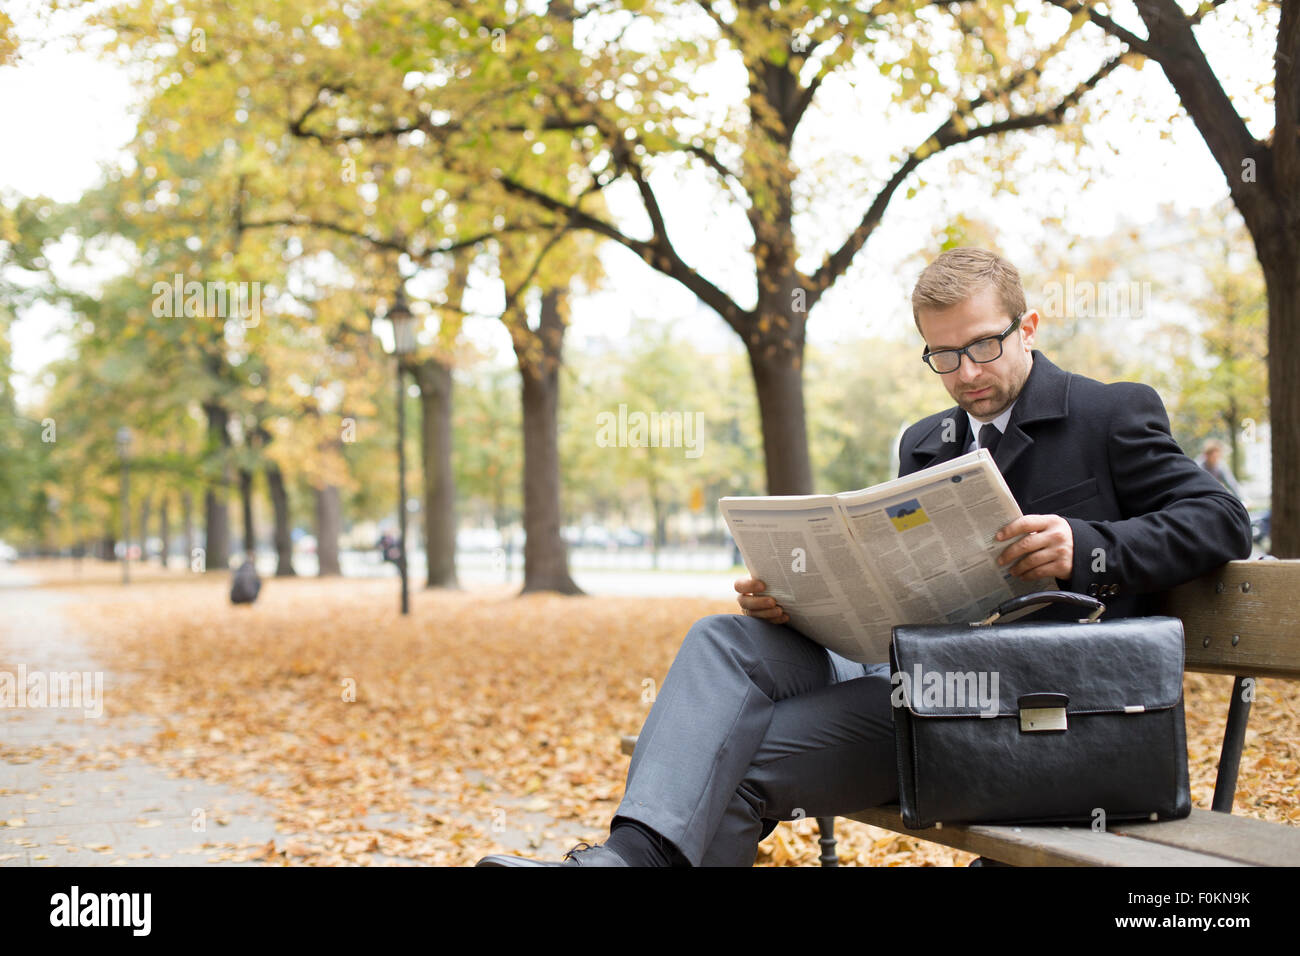 businessman on park bench reading newspaper stock photo: 86485663